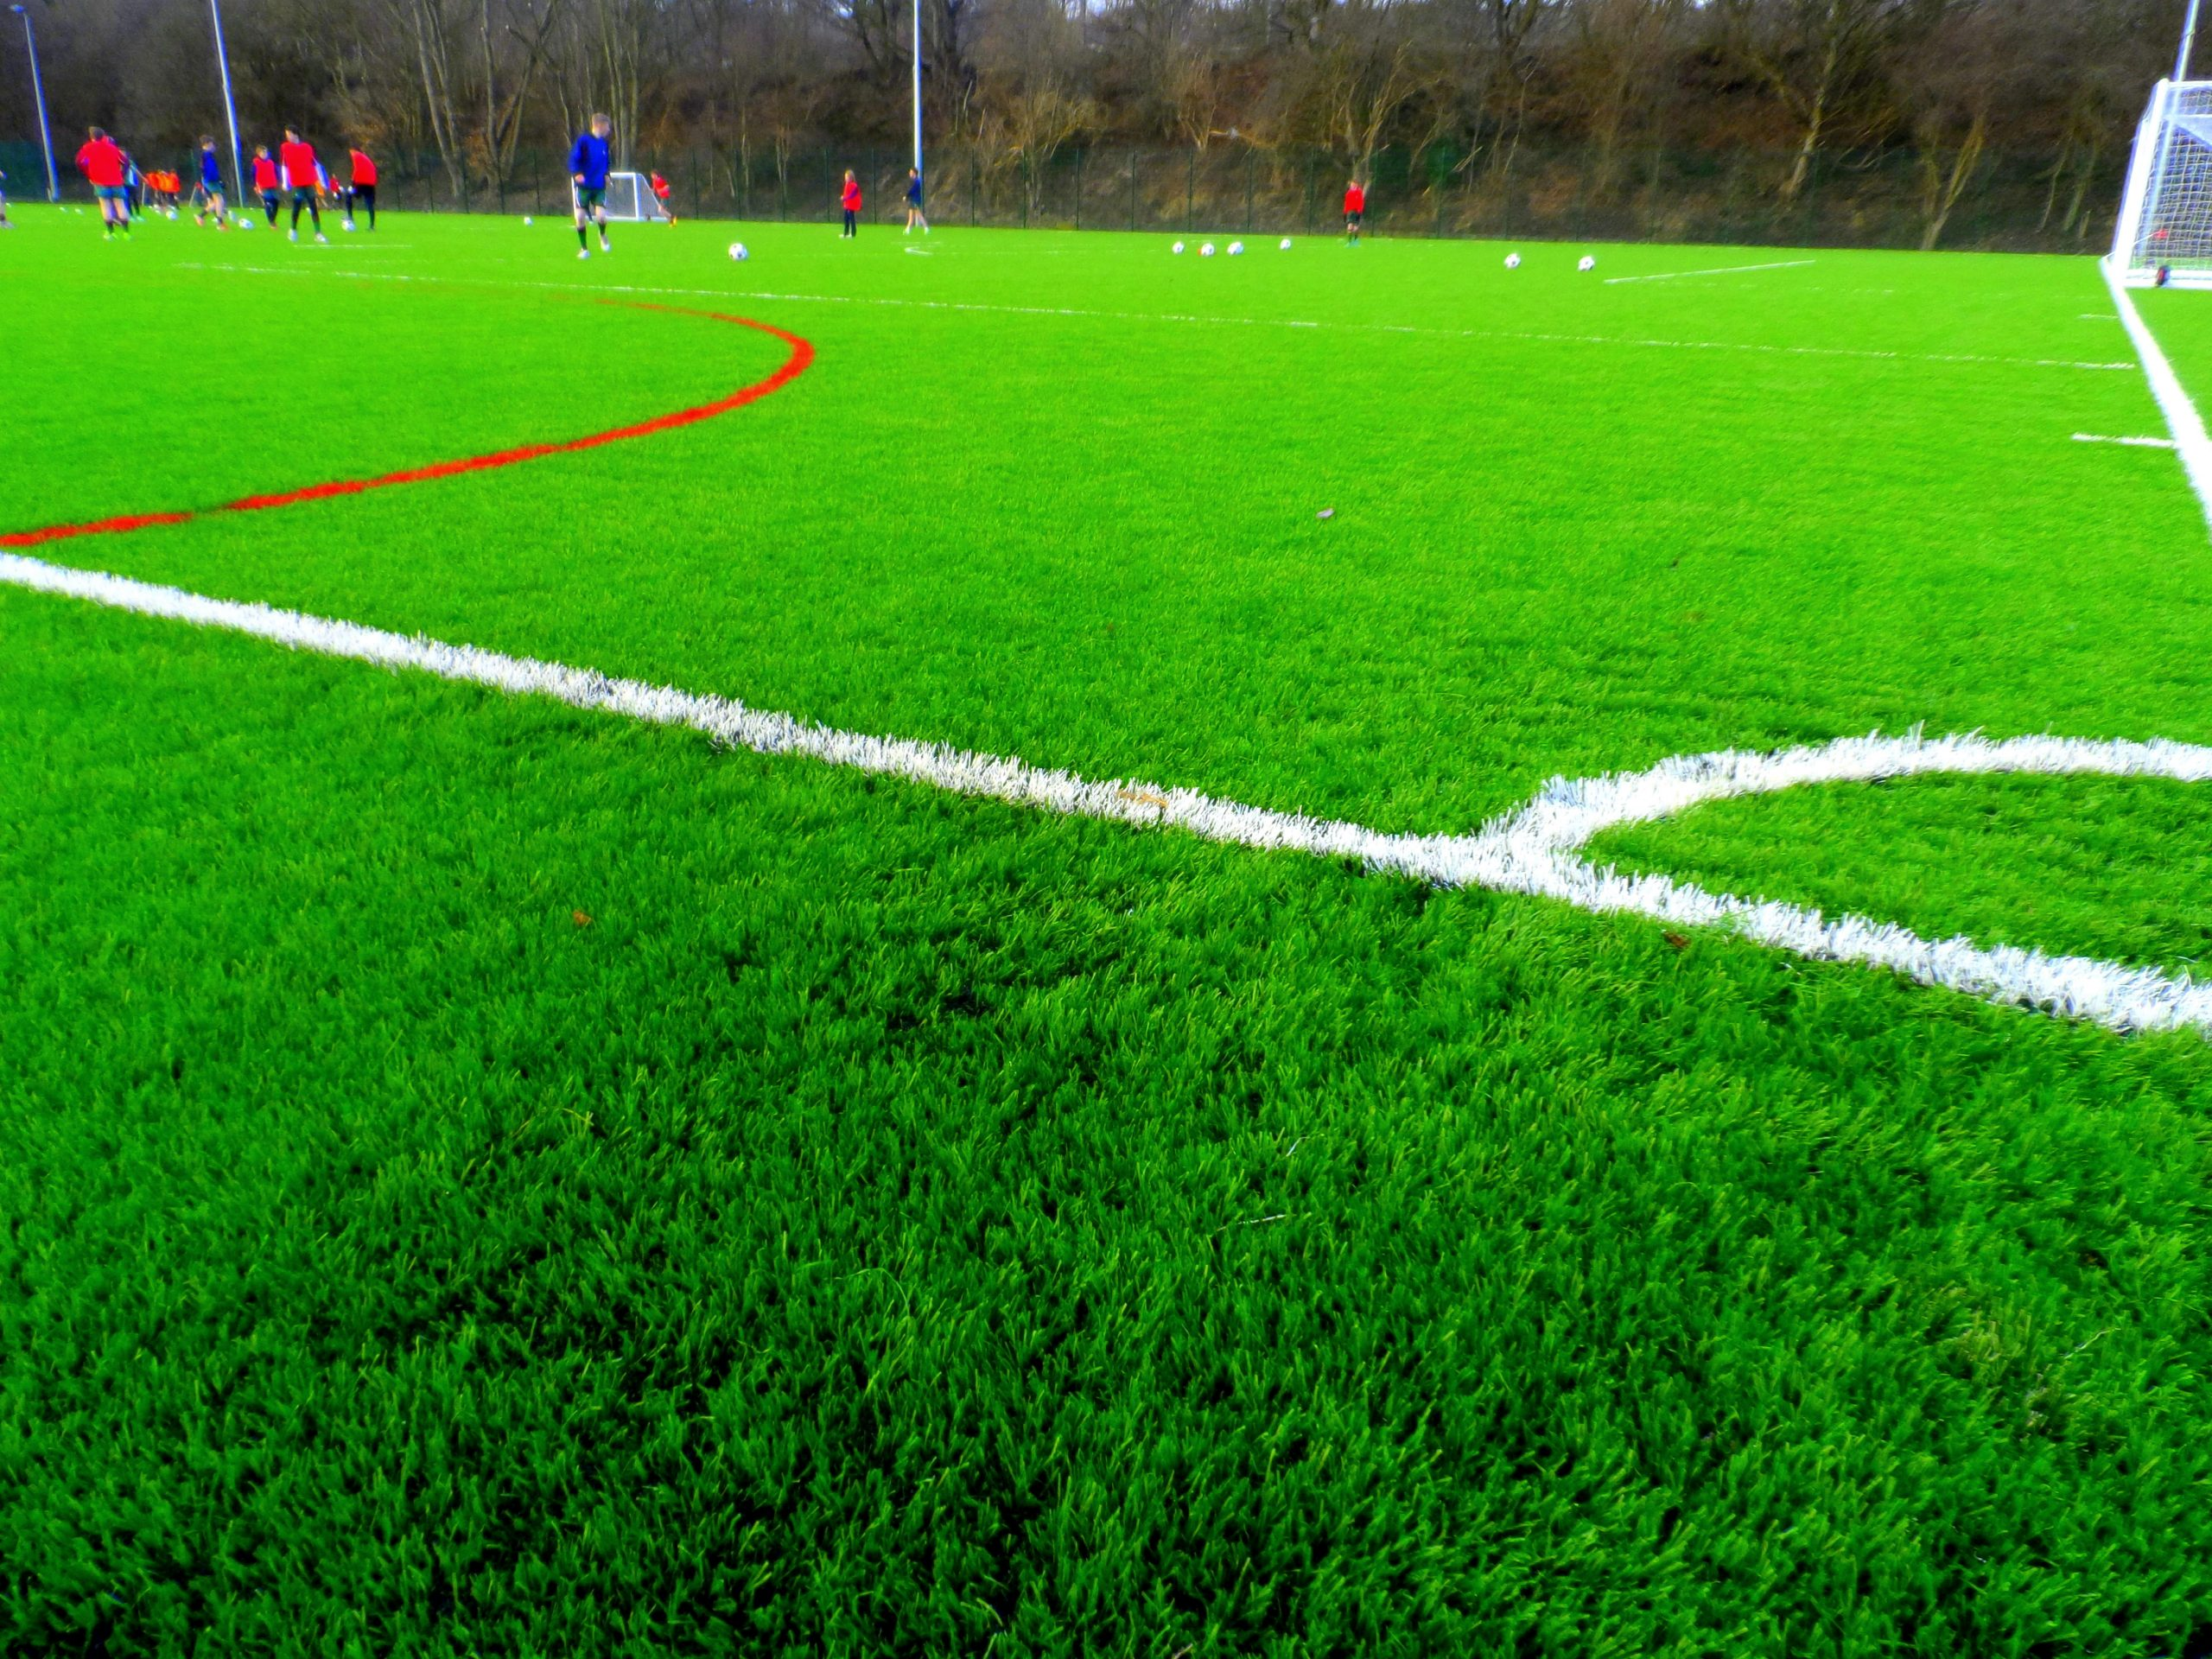 3G Pitch Facility in Whitehall